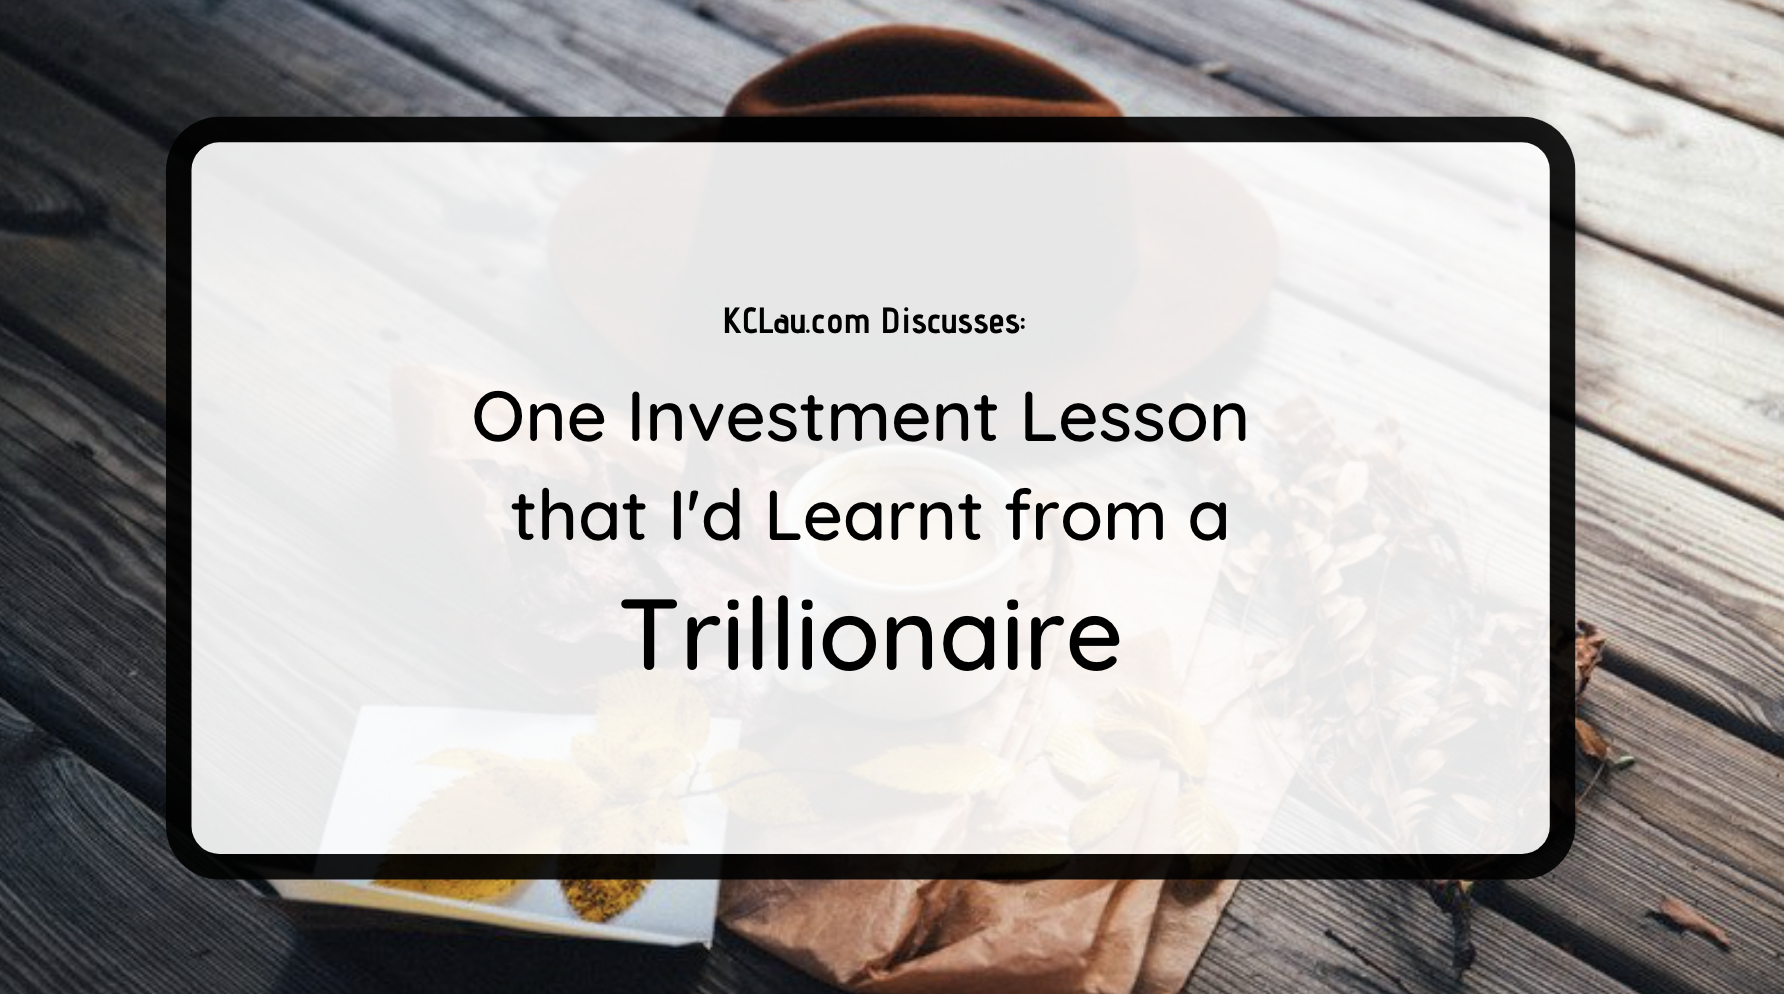 One Investment Lesson I'd Learnt from a Trillionaire